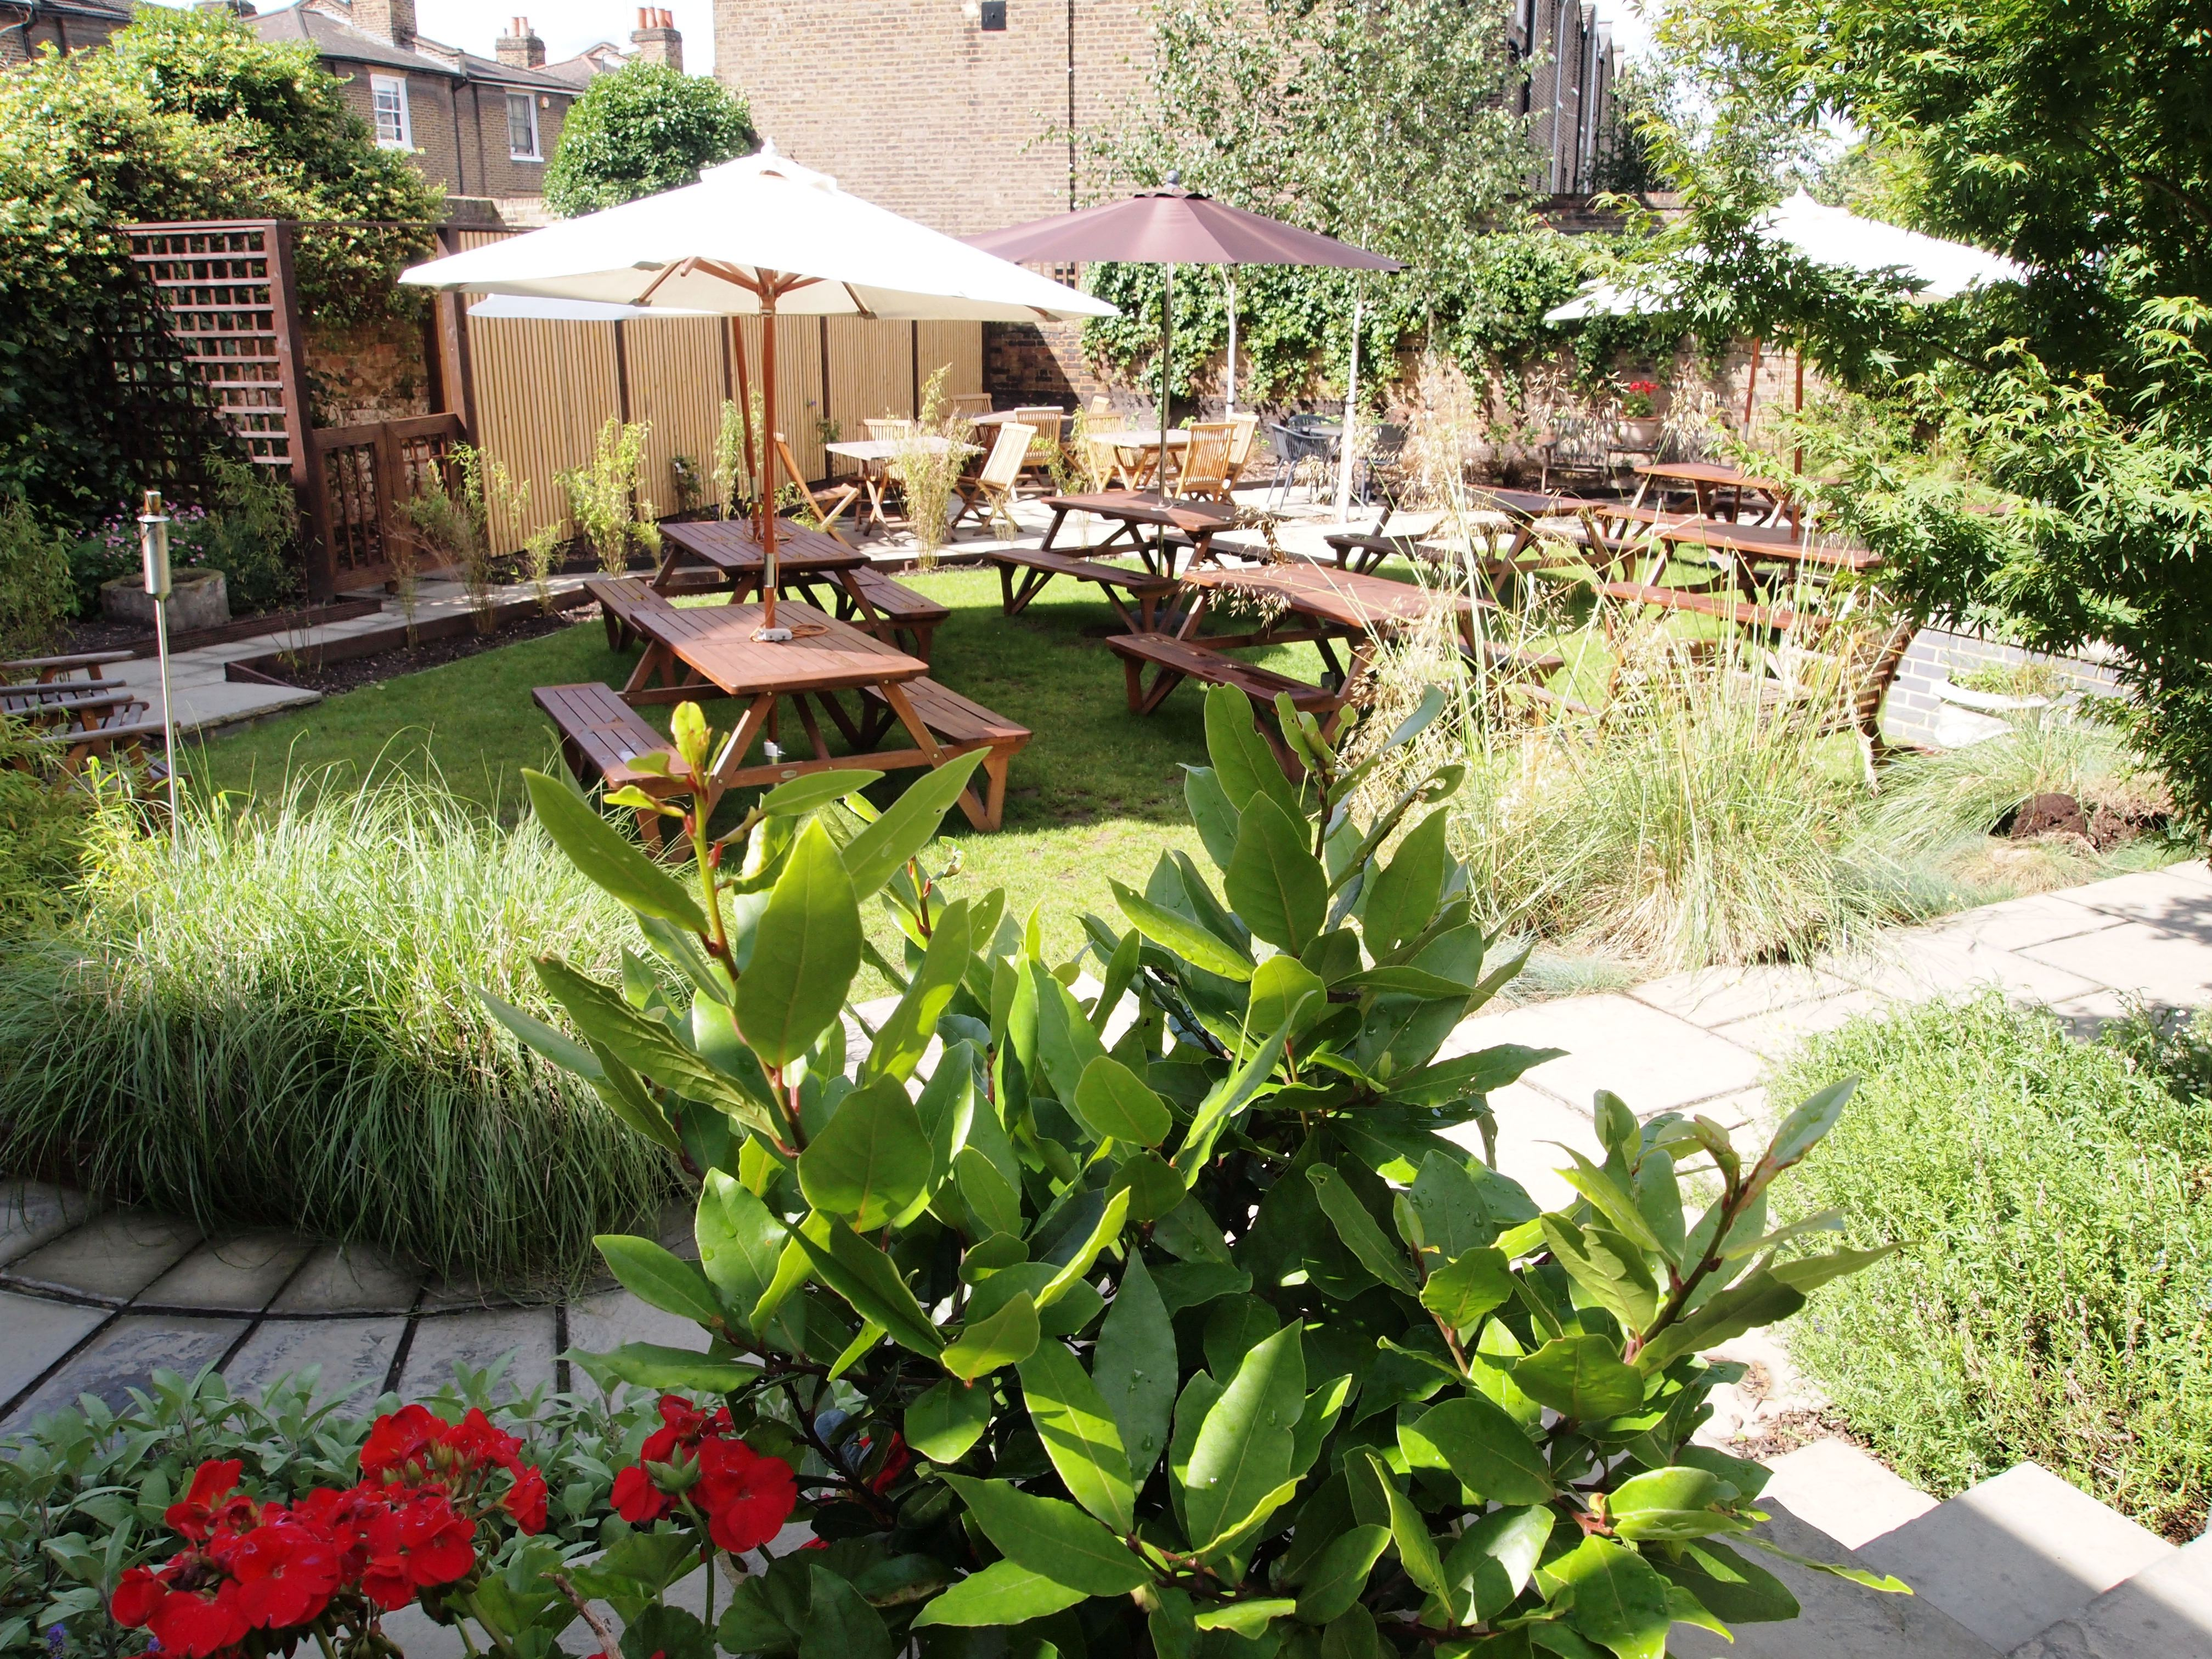 small wedding hotels london%0A The Garden at The Guildford Arms